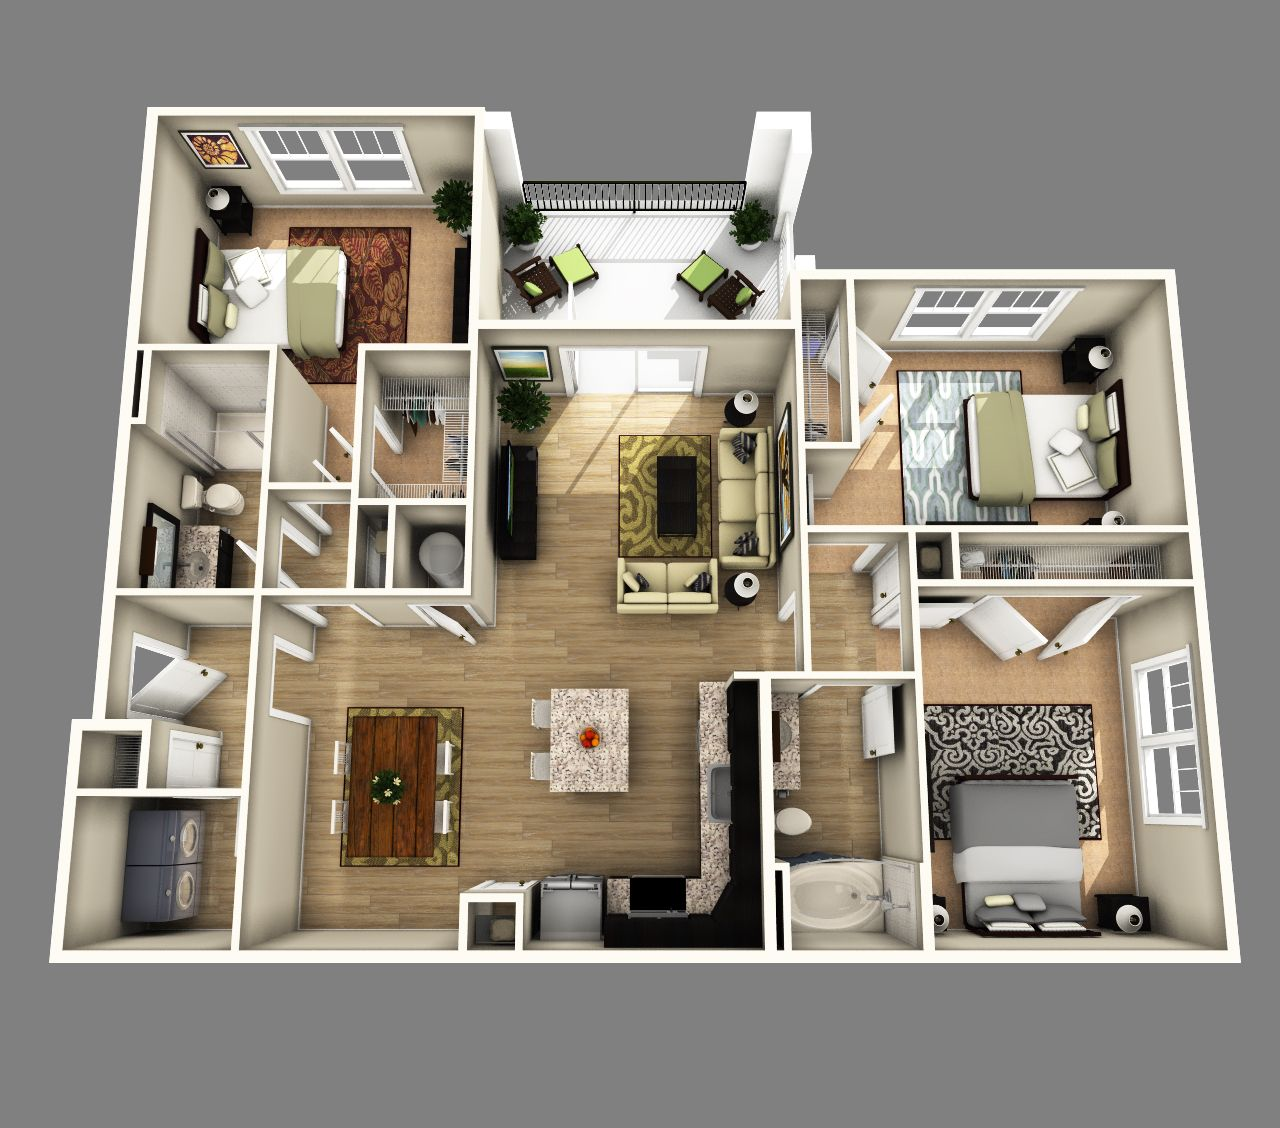 3d open floor plan 3 bedroom 2 bathroom google search for 2 bedroom 3 bath house plans